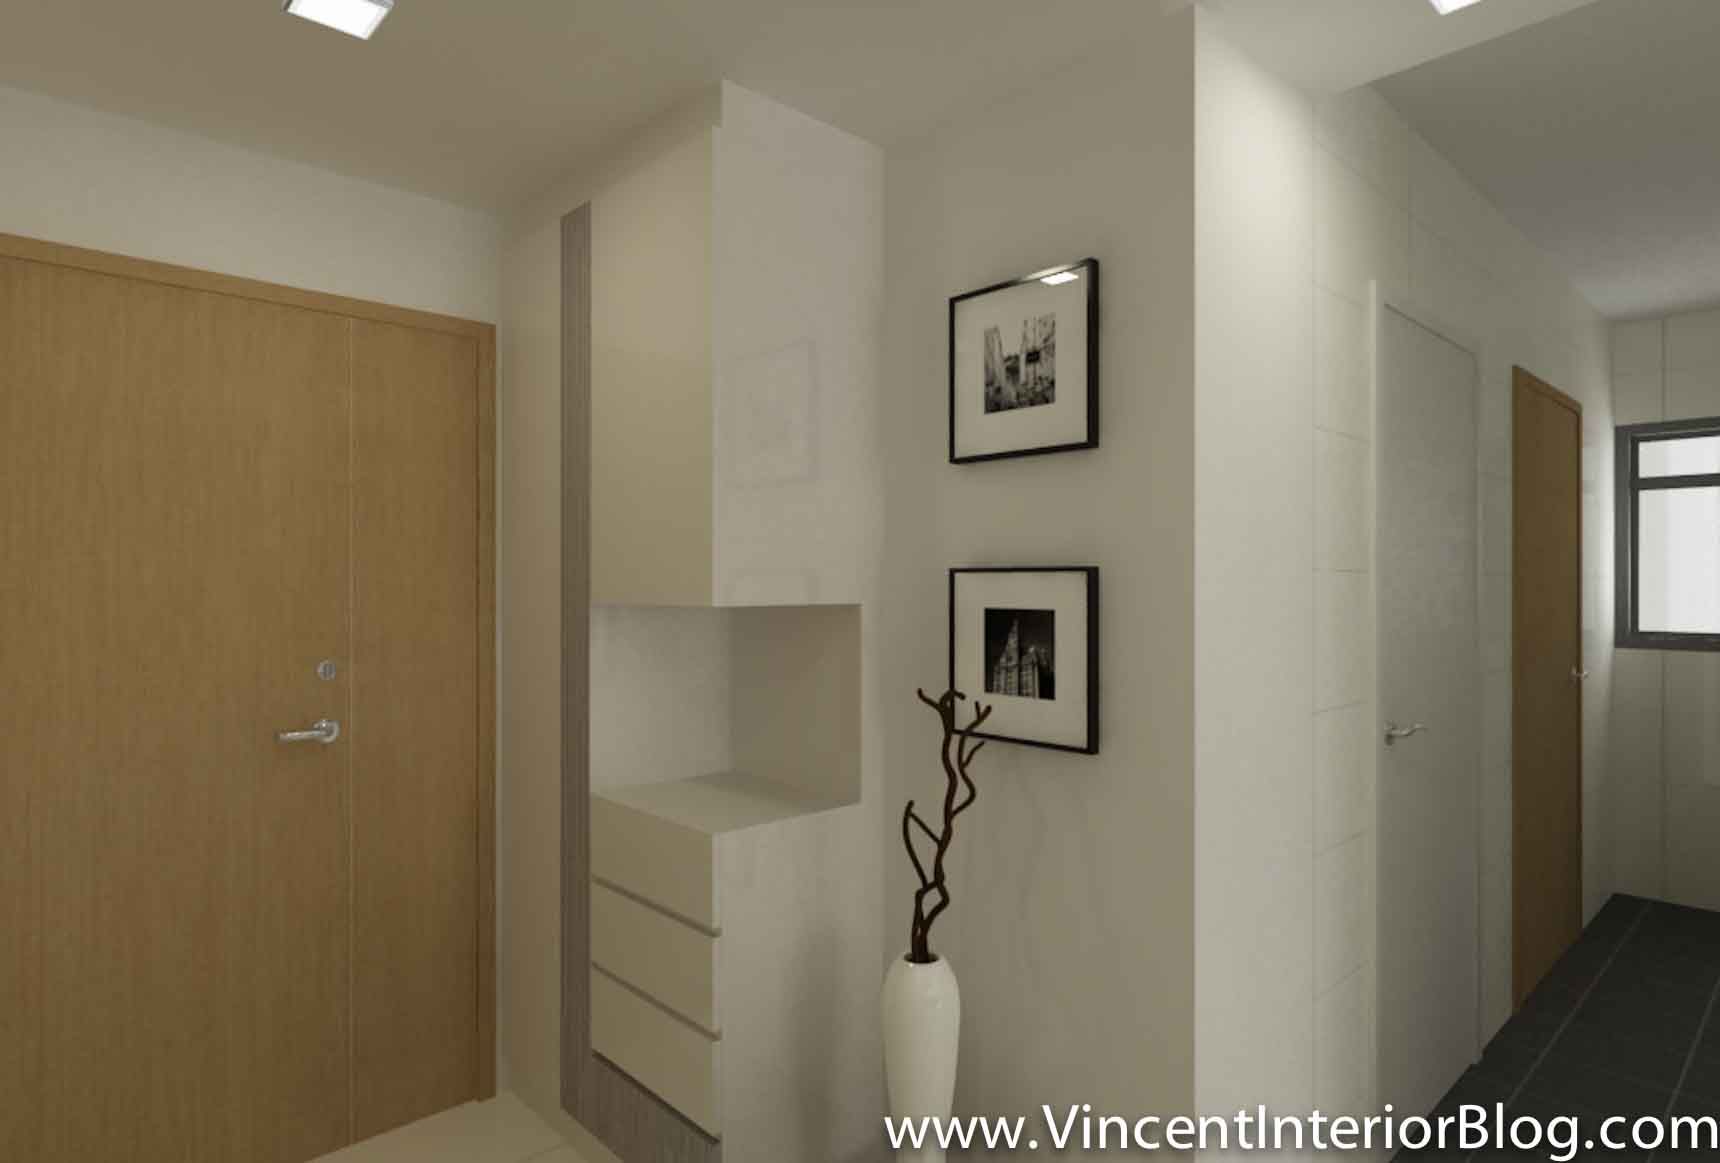 Bto 3 room hdb renovation by interior designer ben ng for Interior design 4 room